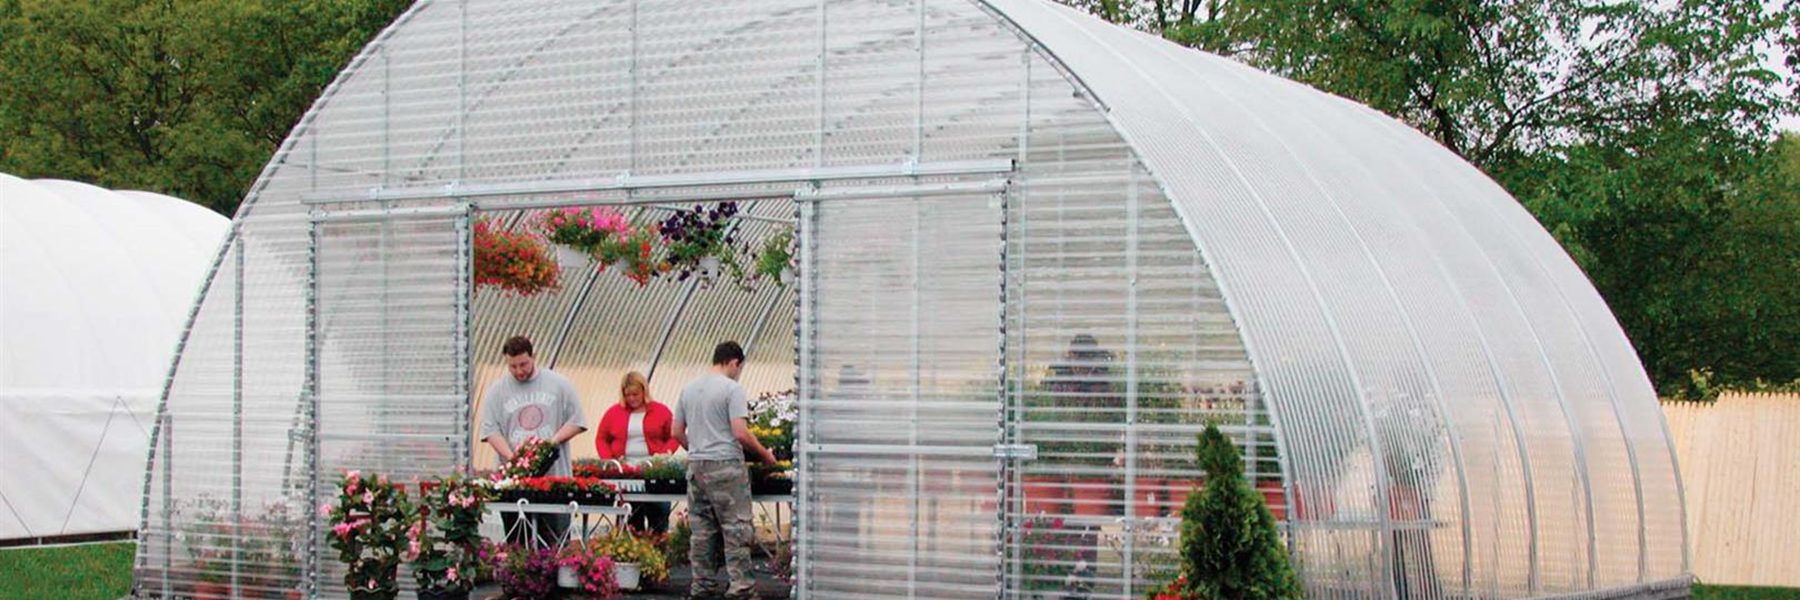 backyard greenhouse outside